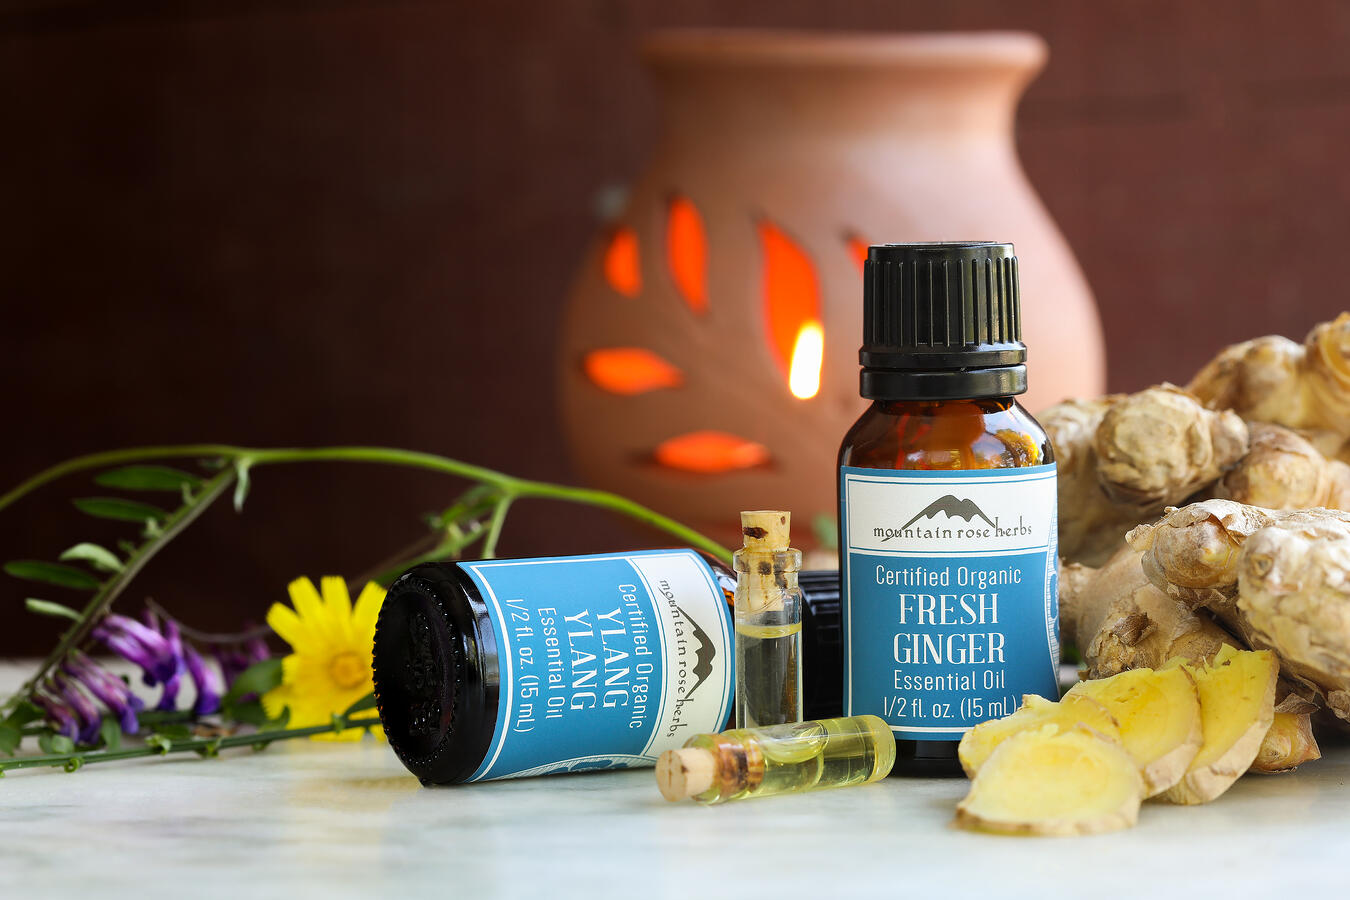 Bottles of ylang ylang and fresh ginger essential oils surrounded by fresh ginger root, flowers and a candle powered ceramic diffuser.